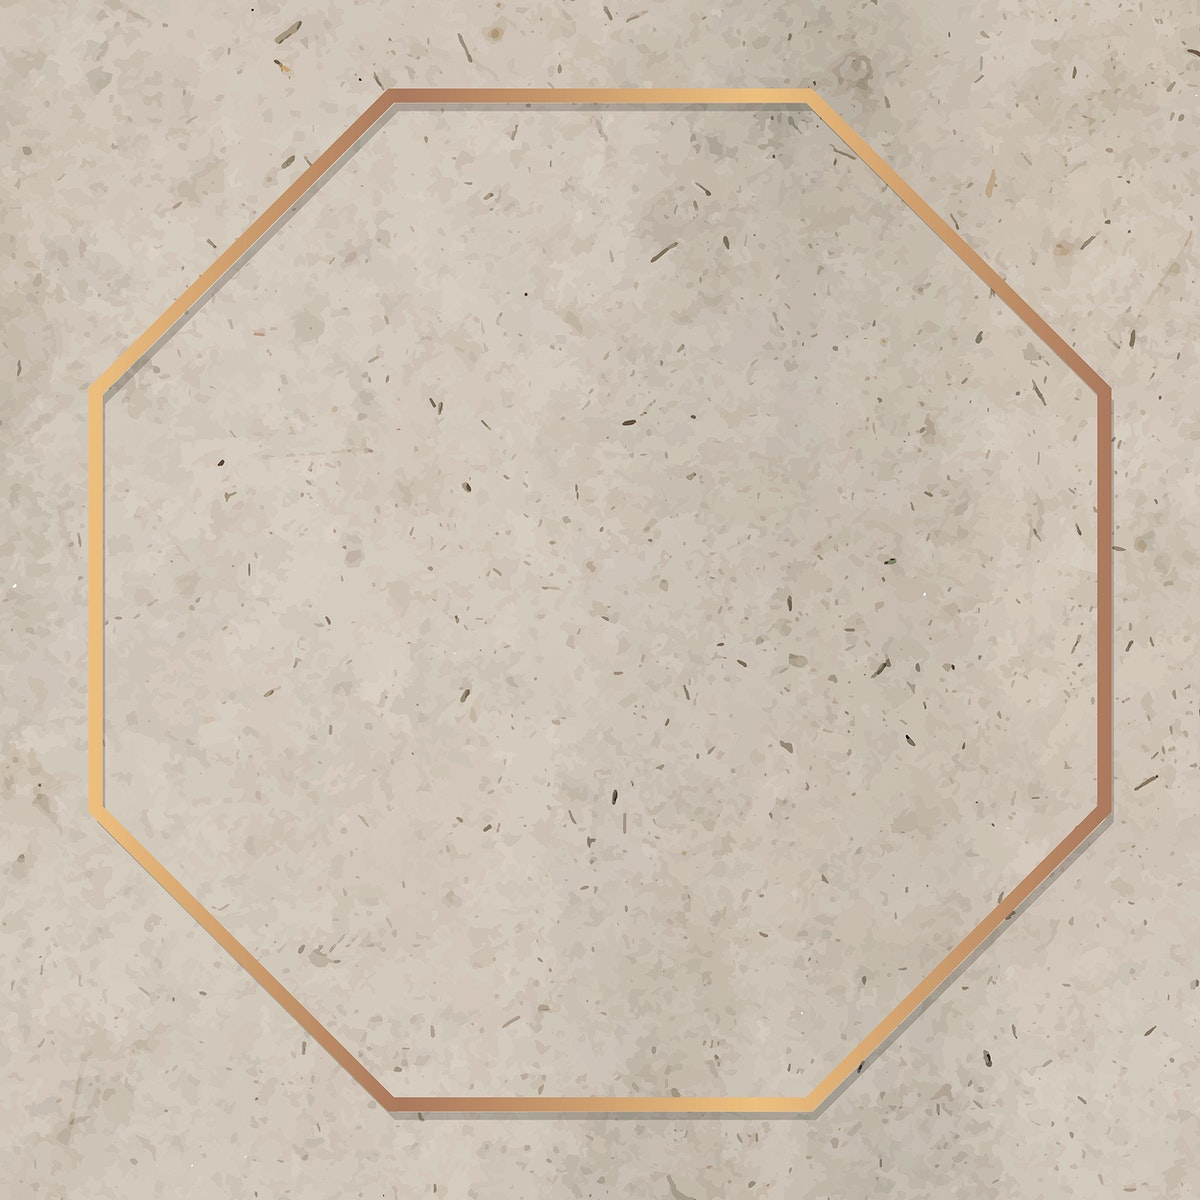 Octagon gold frame on brown marble background vector